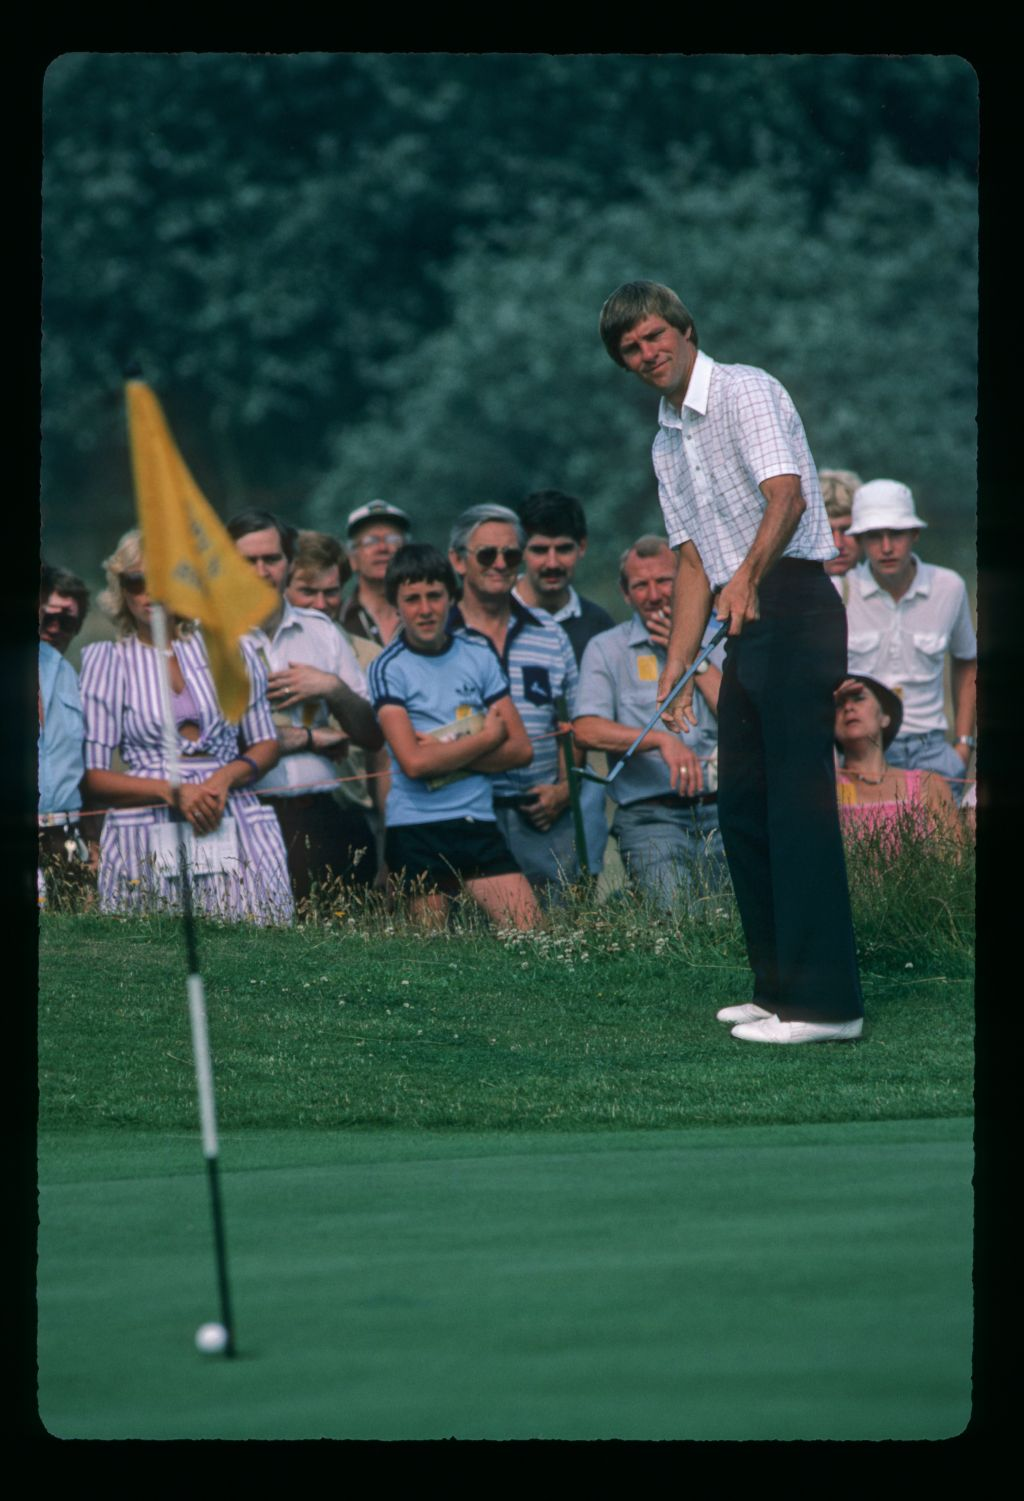 Bill Rogers chipping from the greenside semi during the 1983 Open Championship